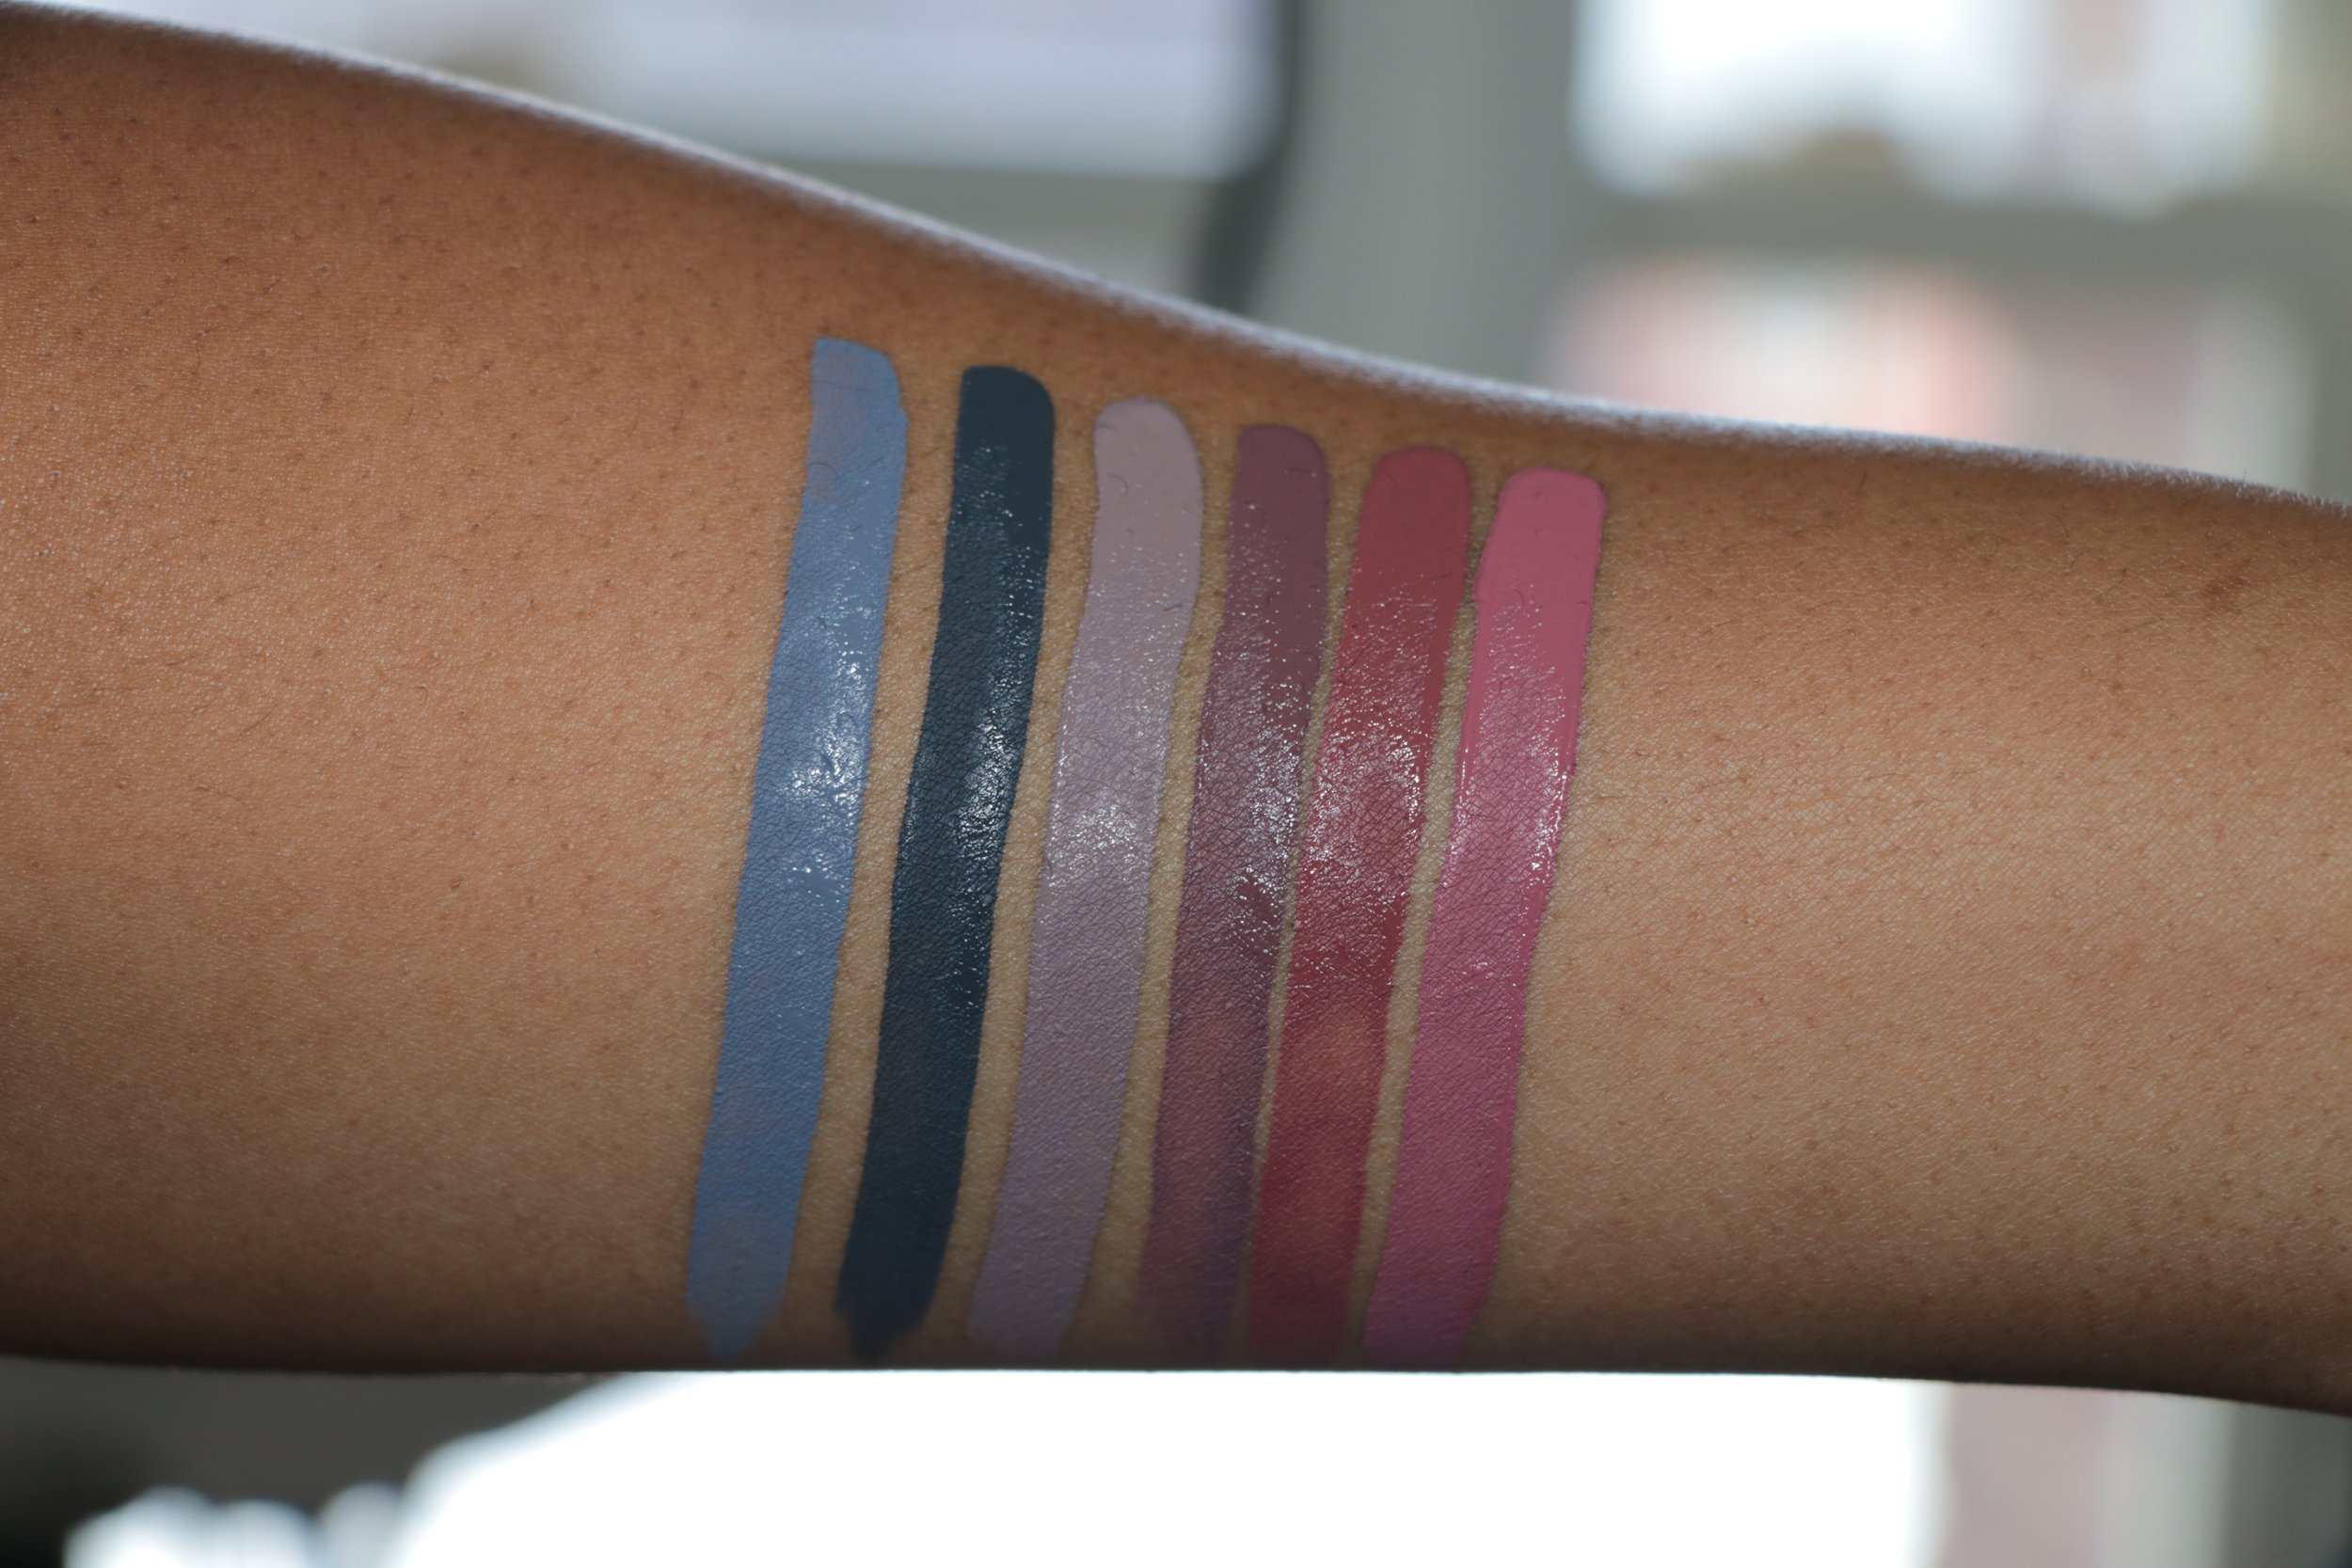 Swatch from left to right (STILL WET) Dagger, Woolf, Haze II, Haze, Lolita, Lovecraft